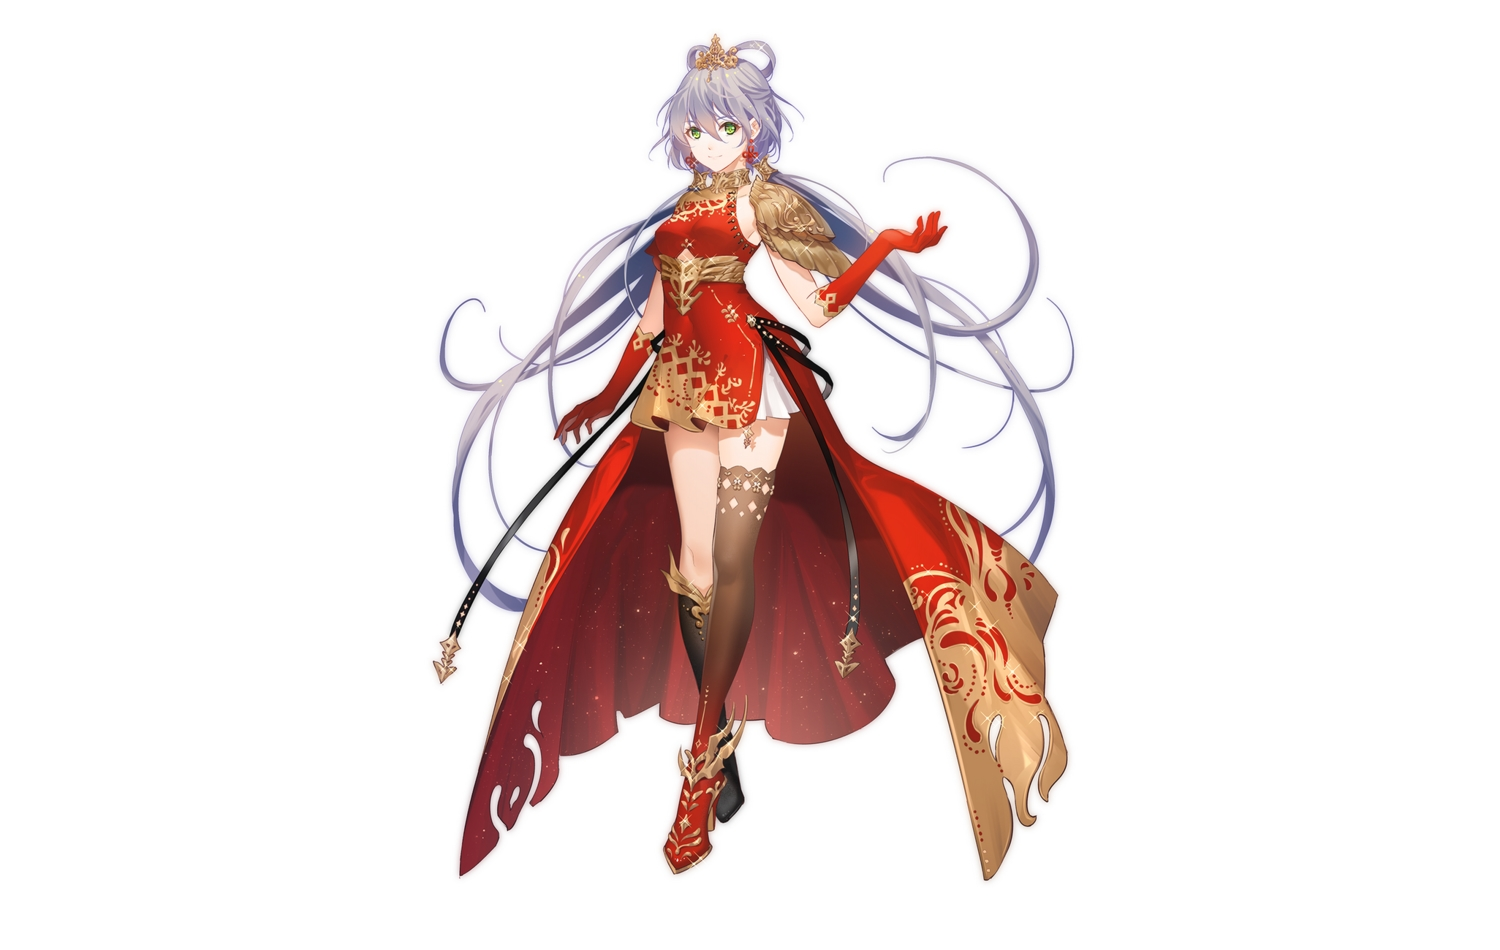 armor boots chinese_clothes chinese_dress dress elbow_gloves gloves green_eyes headdress long_hair luo_tianyi purple_hair thighhighs tidsean twintails vocaloid vocaloid_china white